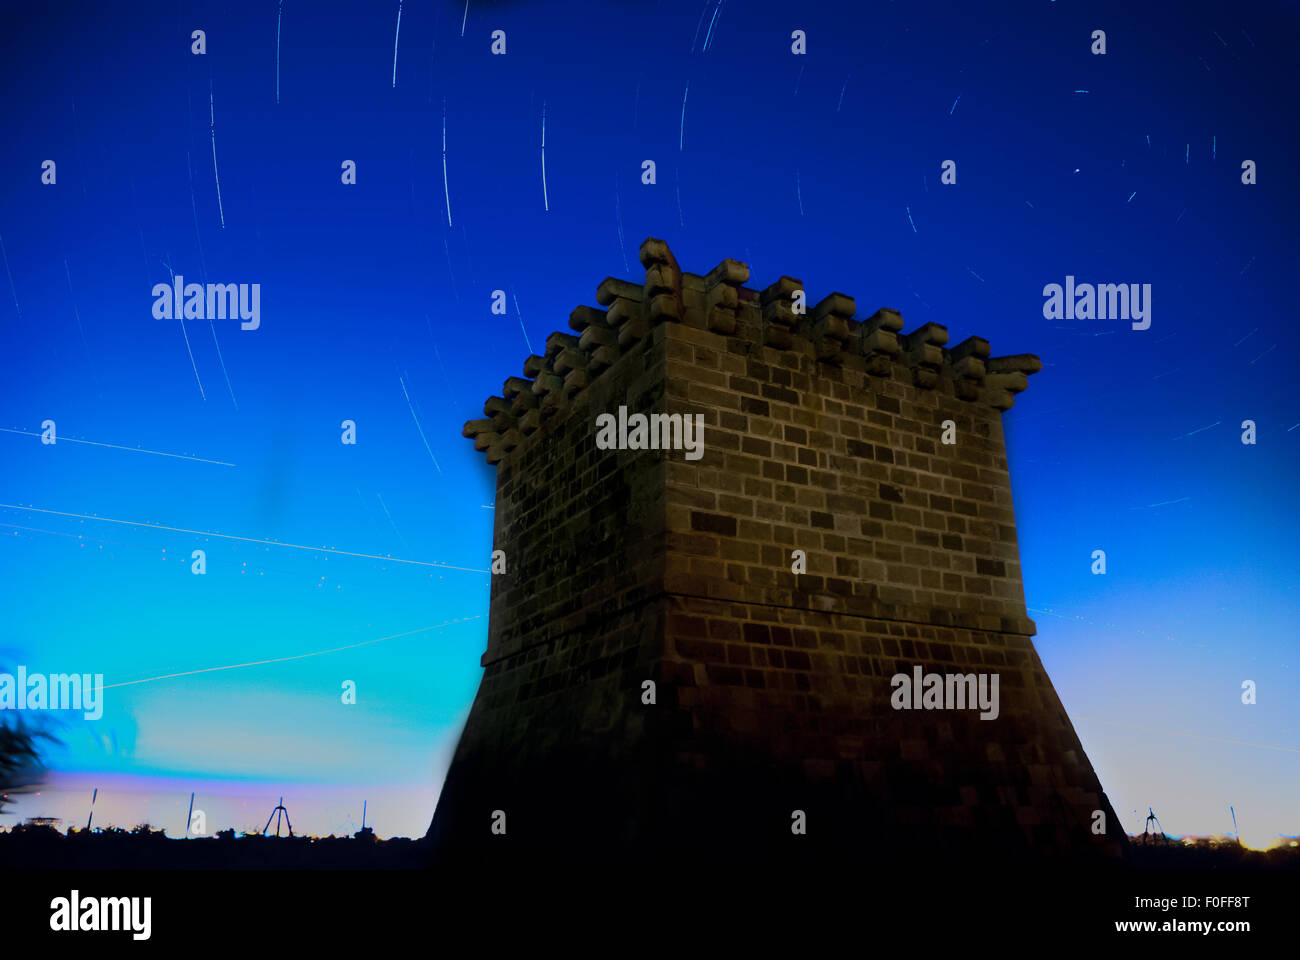 Medieval venetian watchtower at Kiti with night sky with star tracks as a background. Larnaca. Cyprus - Stock Image